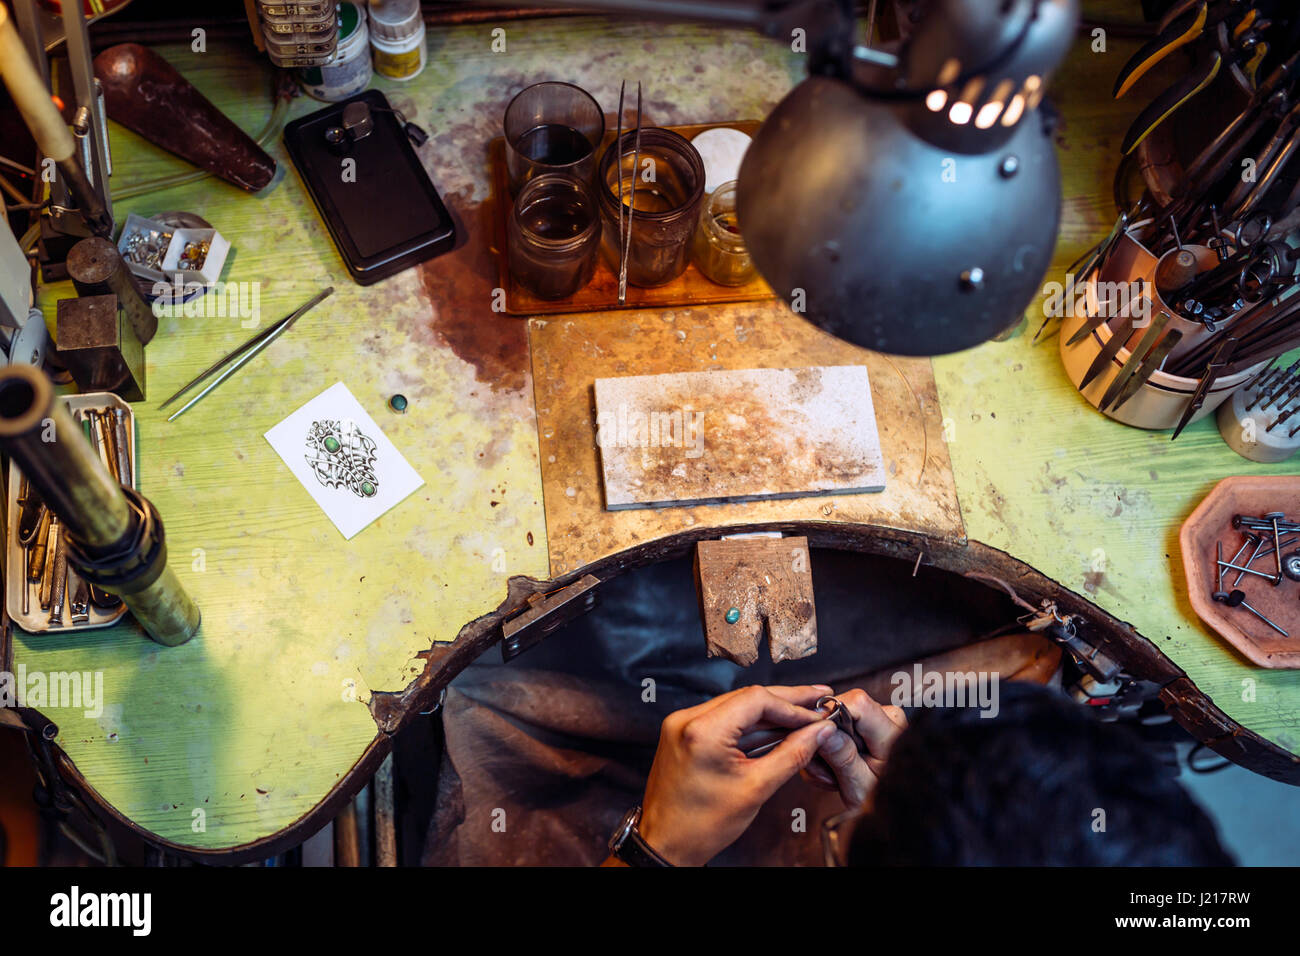 Craftsman working on workbench surrounded by his tools Stock Photo